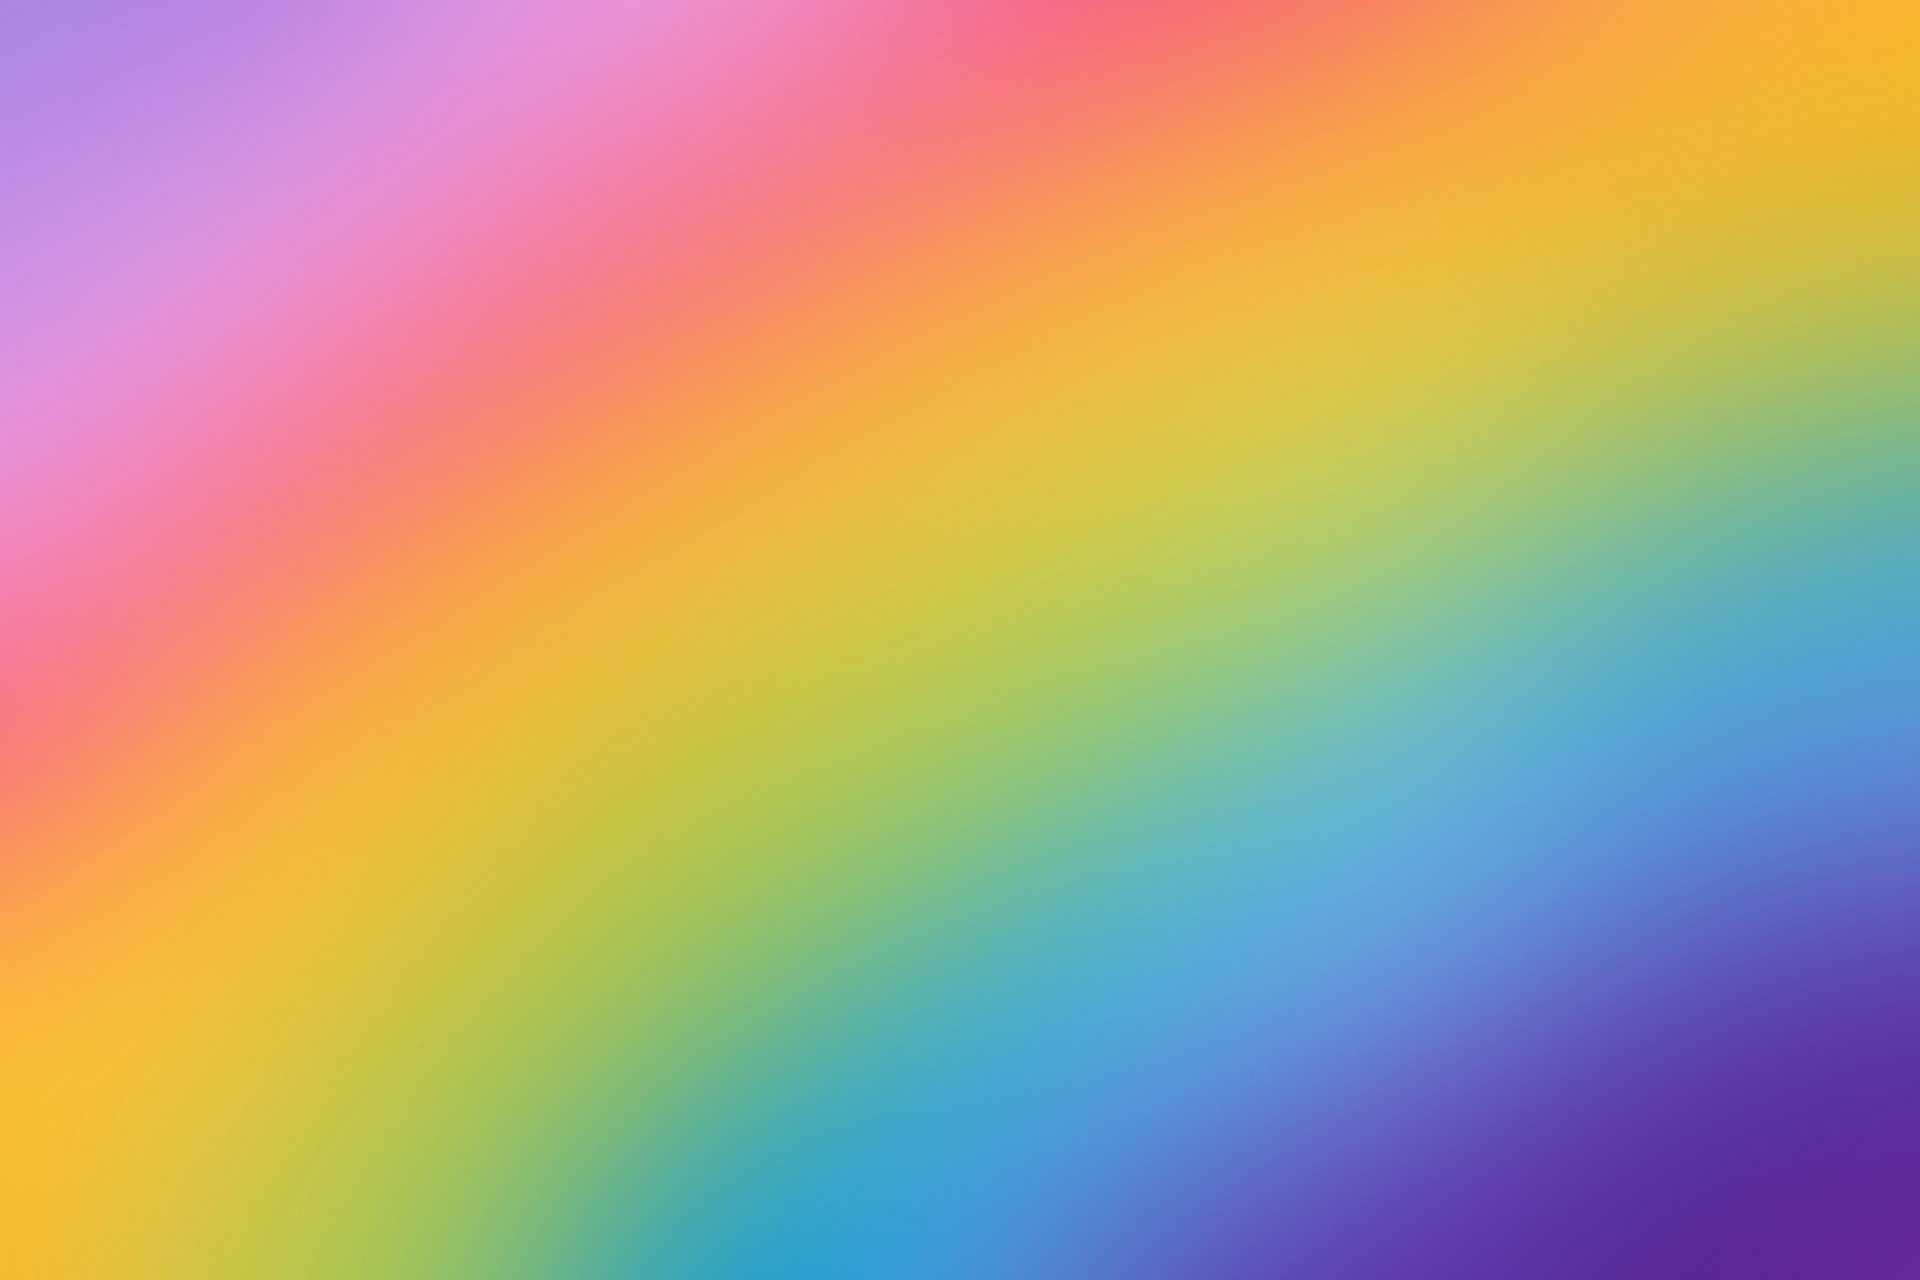 Rainbow Colors Background Free Stock Photo   Public Domain Pictures Rainbow Colors Background